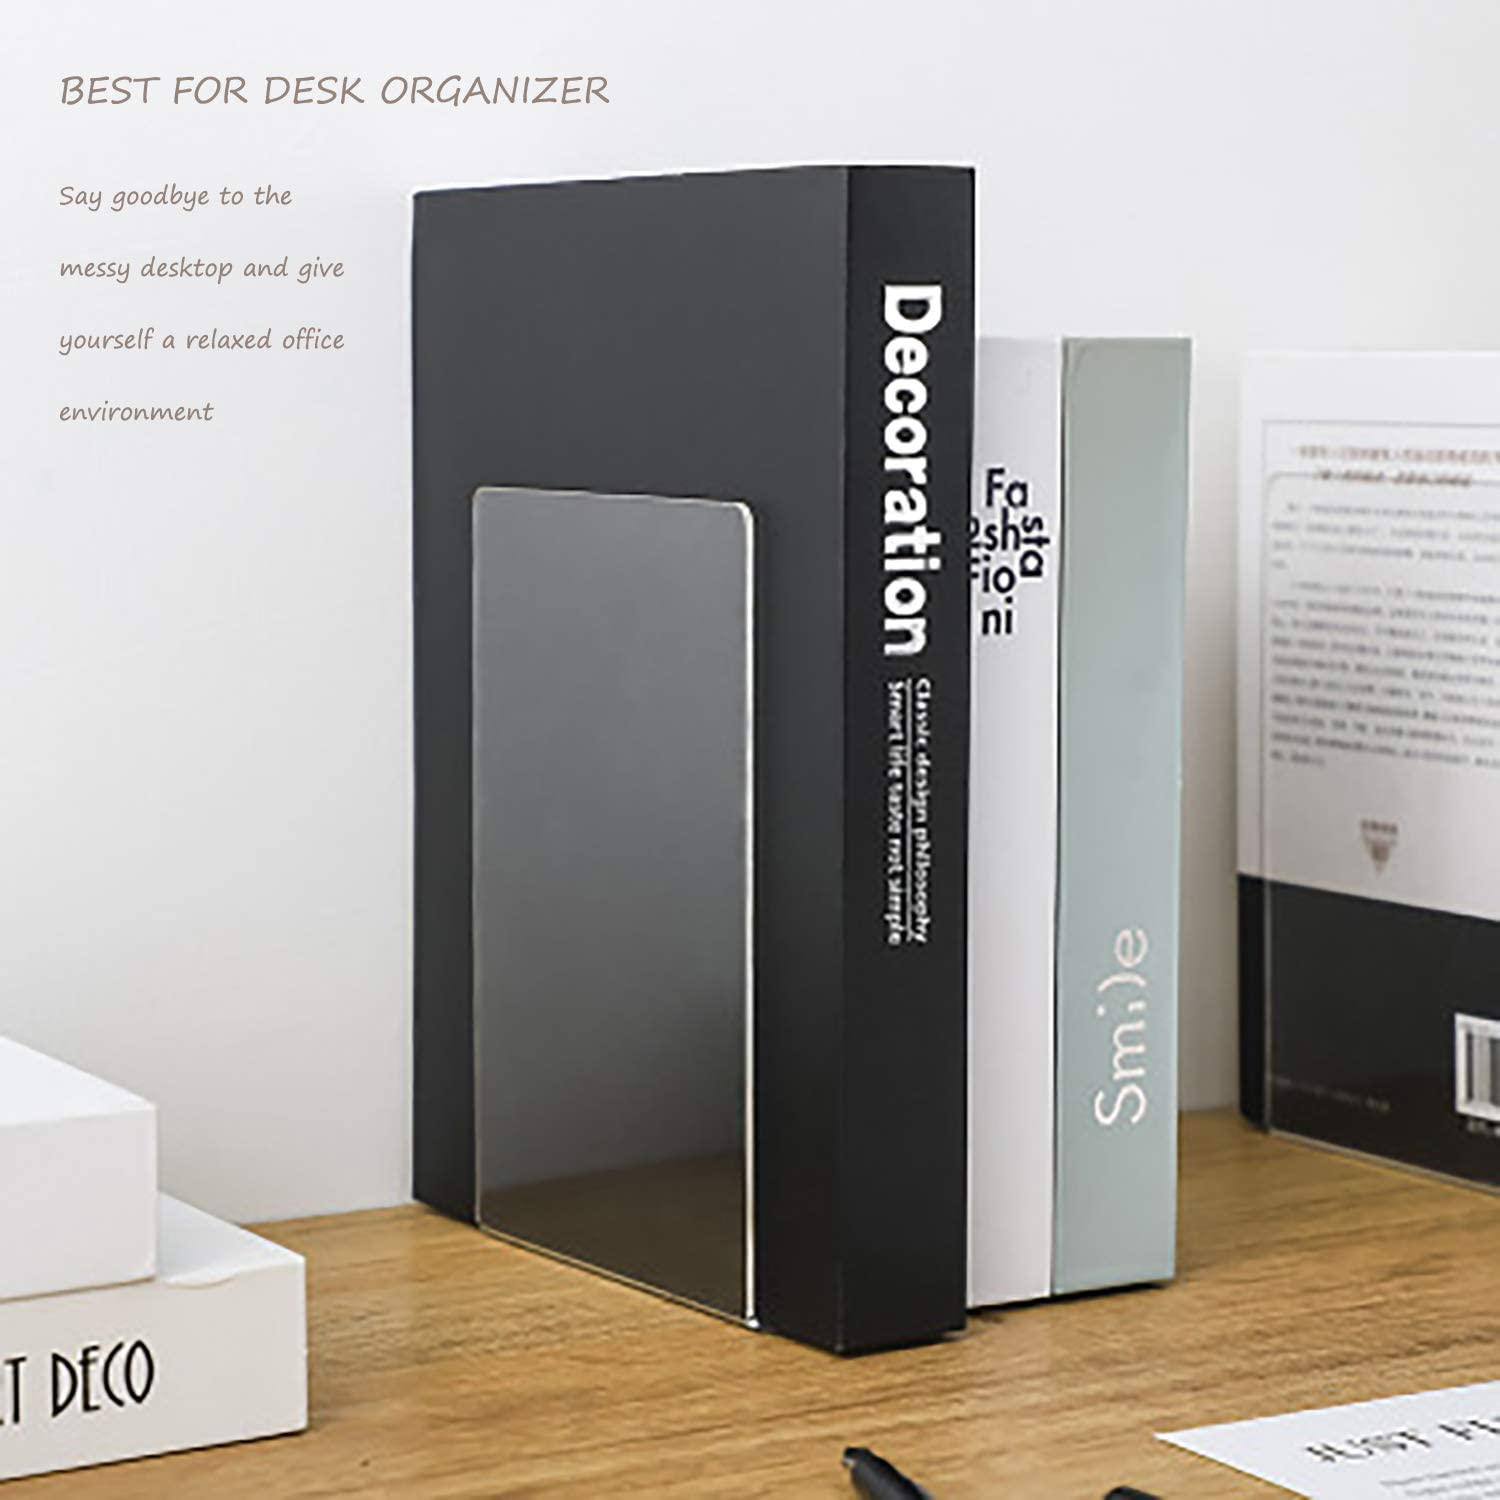 TooWood New Stylish Sturdy and Durable Acrylic Transparent Bookends 2PCS of Bookends with 8PCS Non-Slip Mats; Best for Desk Organizer.